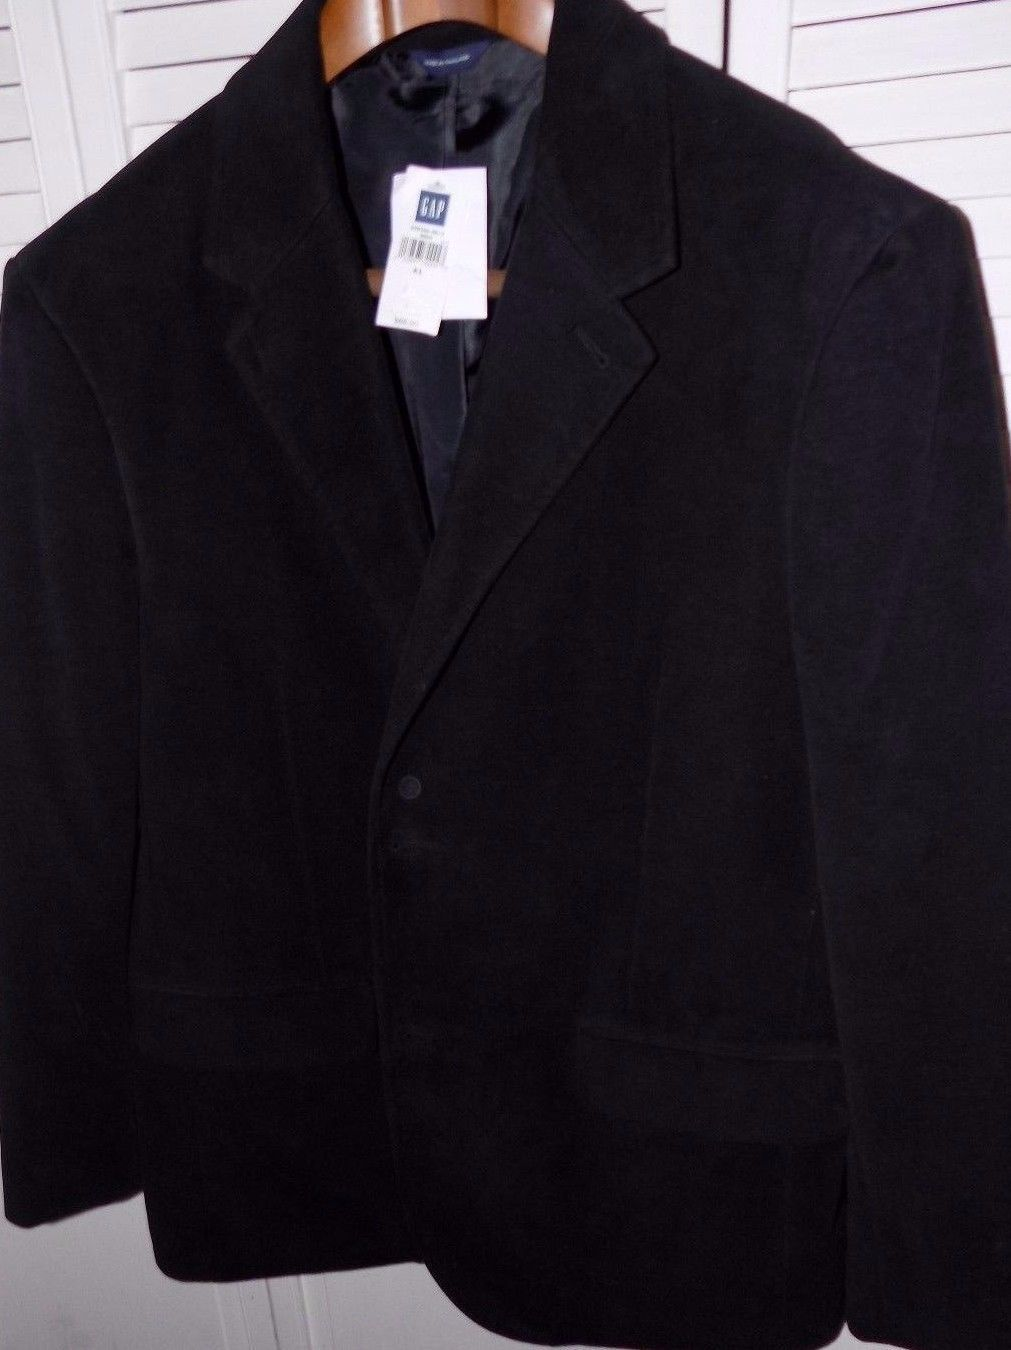 NEW Men`s GAP 100% Cotton Black Suede Look Sports Coat Jacket Size 46R XLGE